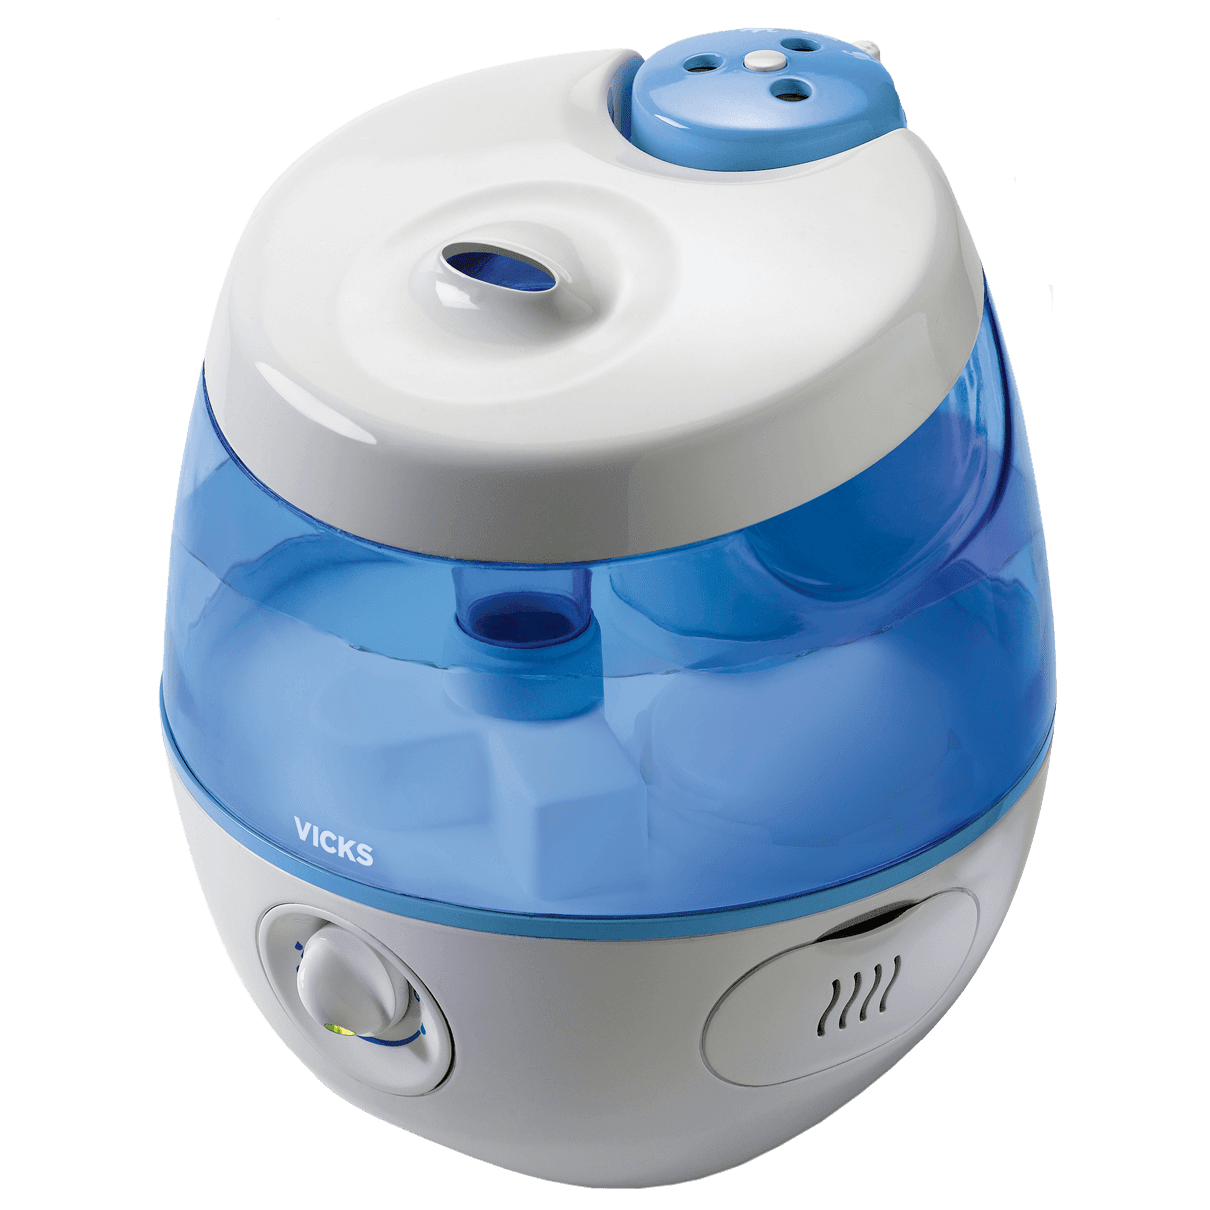 Can I Put Essential Oils in My Vicks Humidifier?